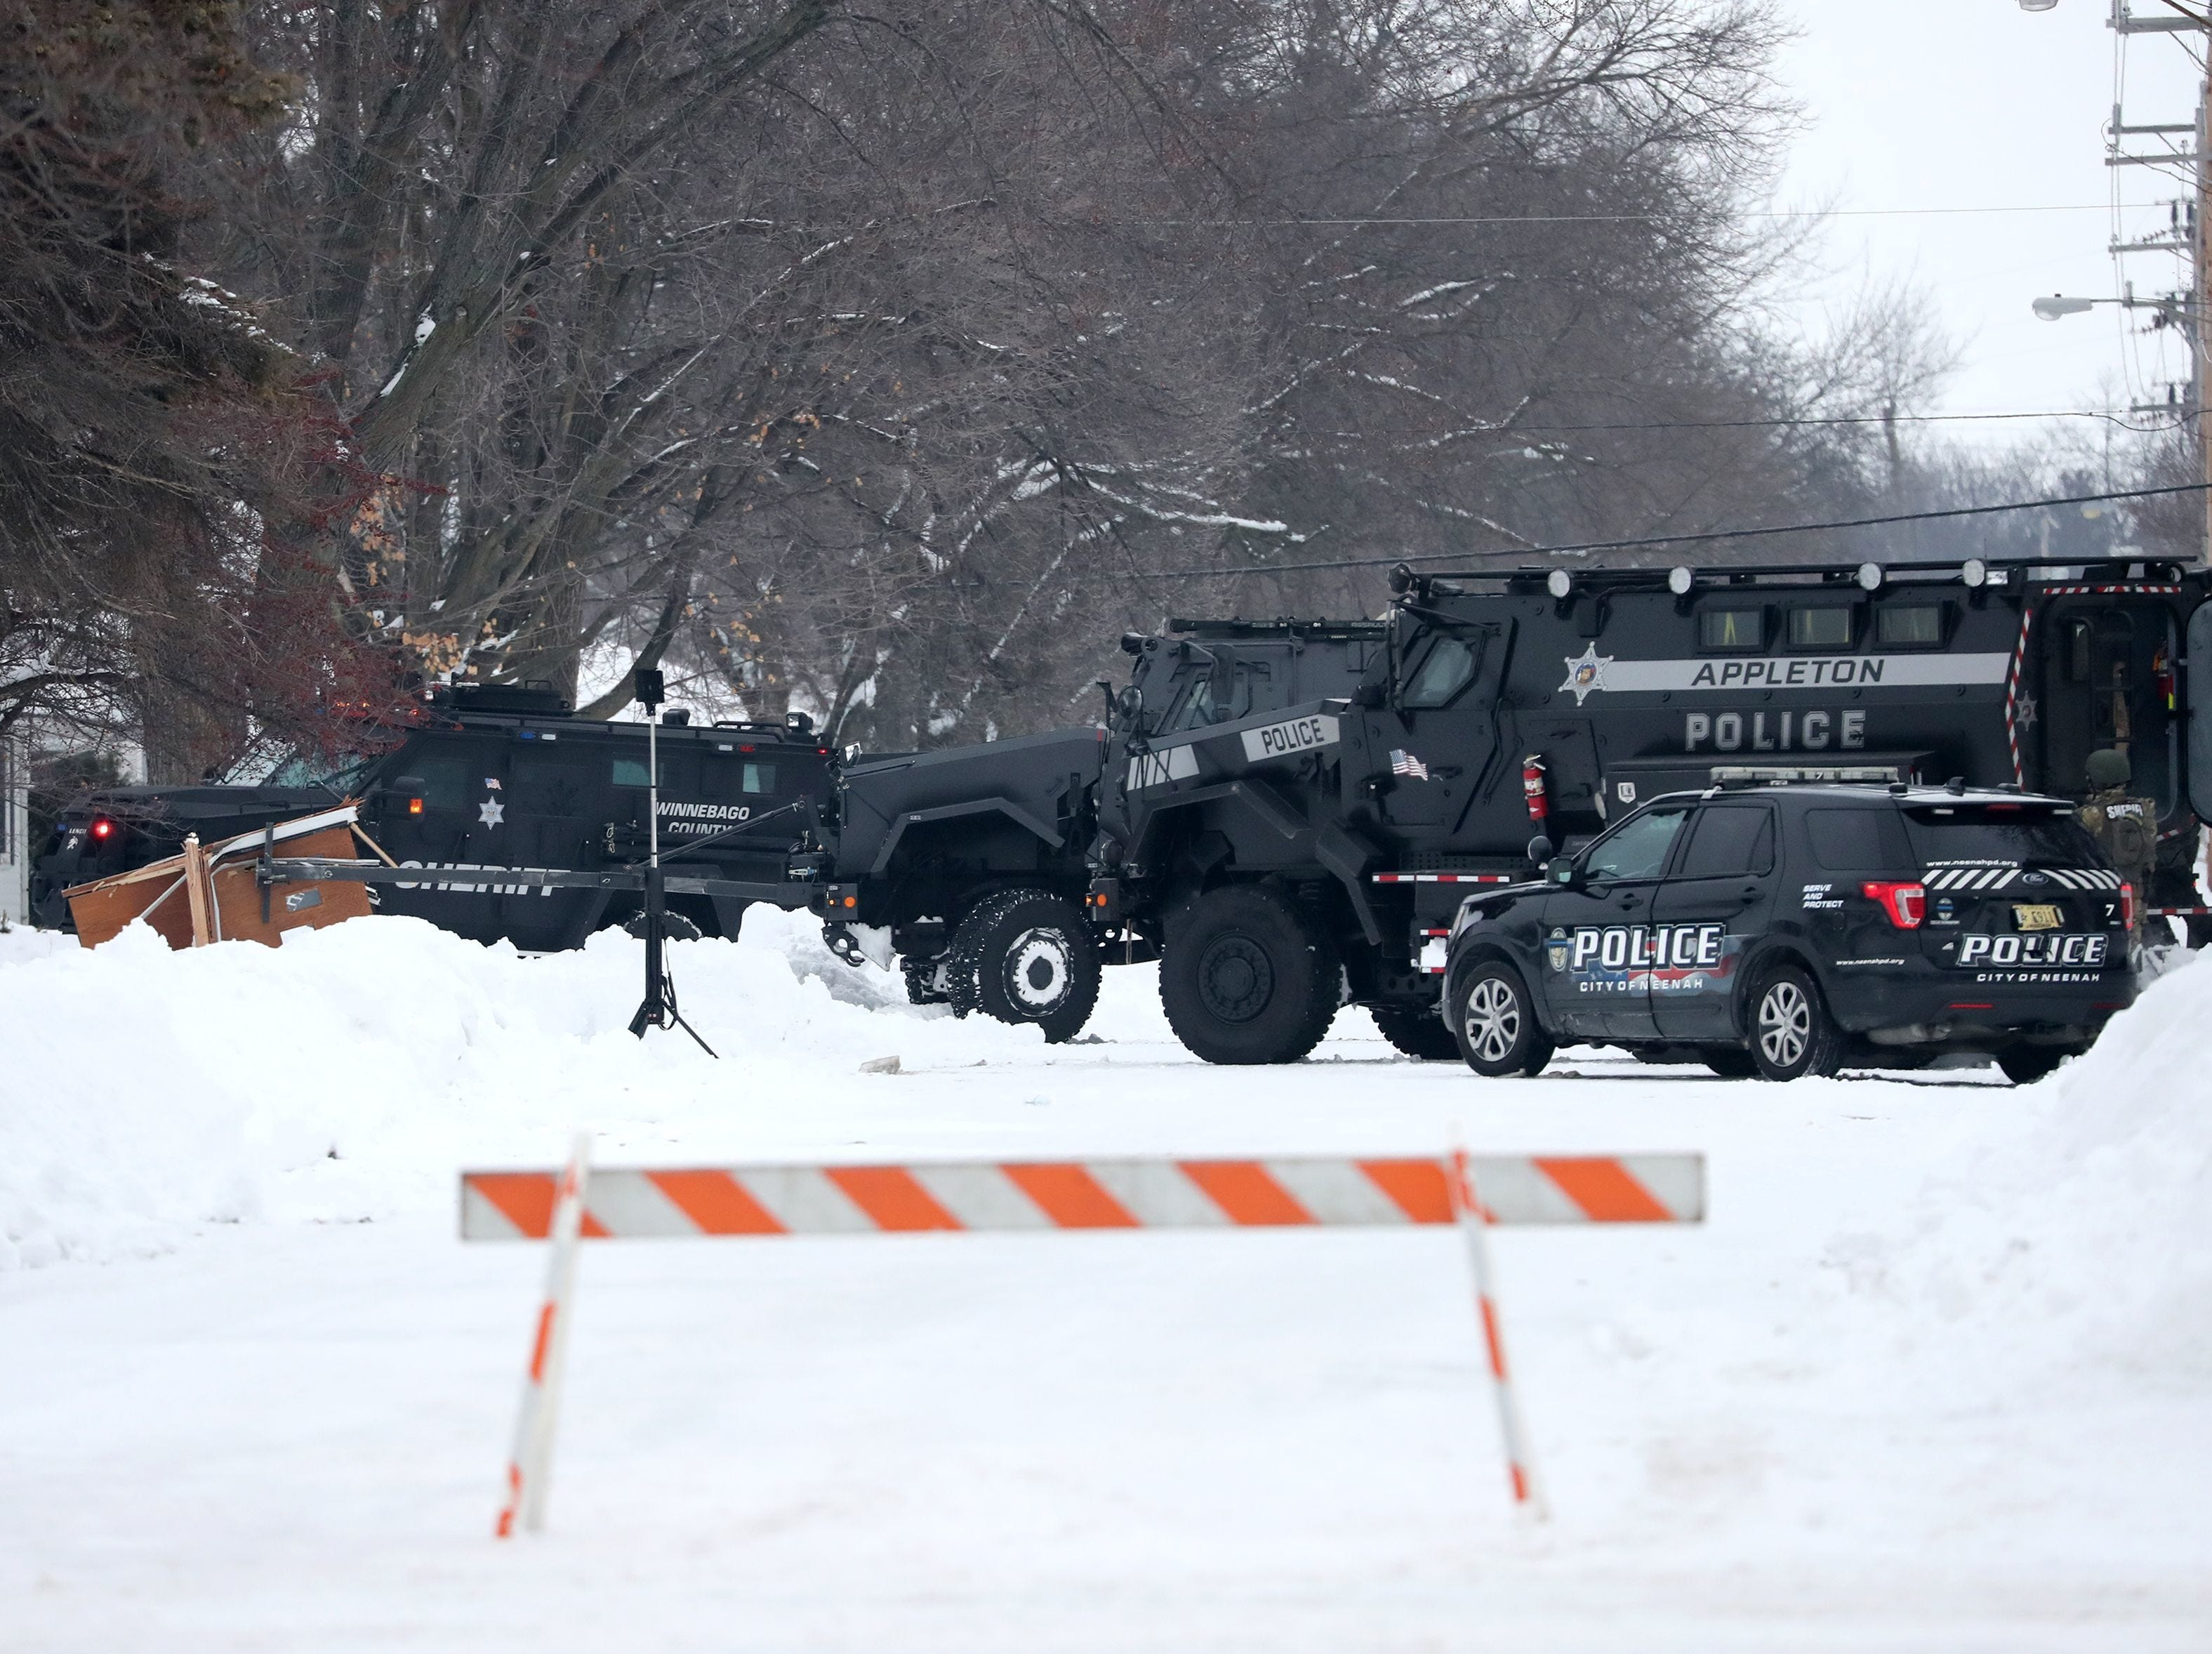 The heavy law enforcement presence during an active police incident in the 400 block of Quarry Lane Thursday, Feb. 14, 2019, in Neenah, Wis.